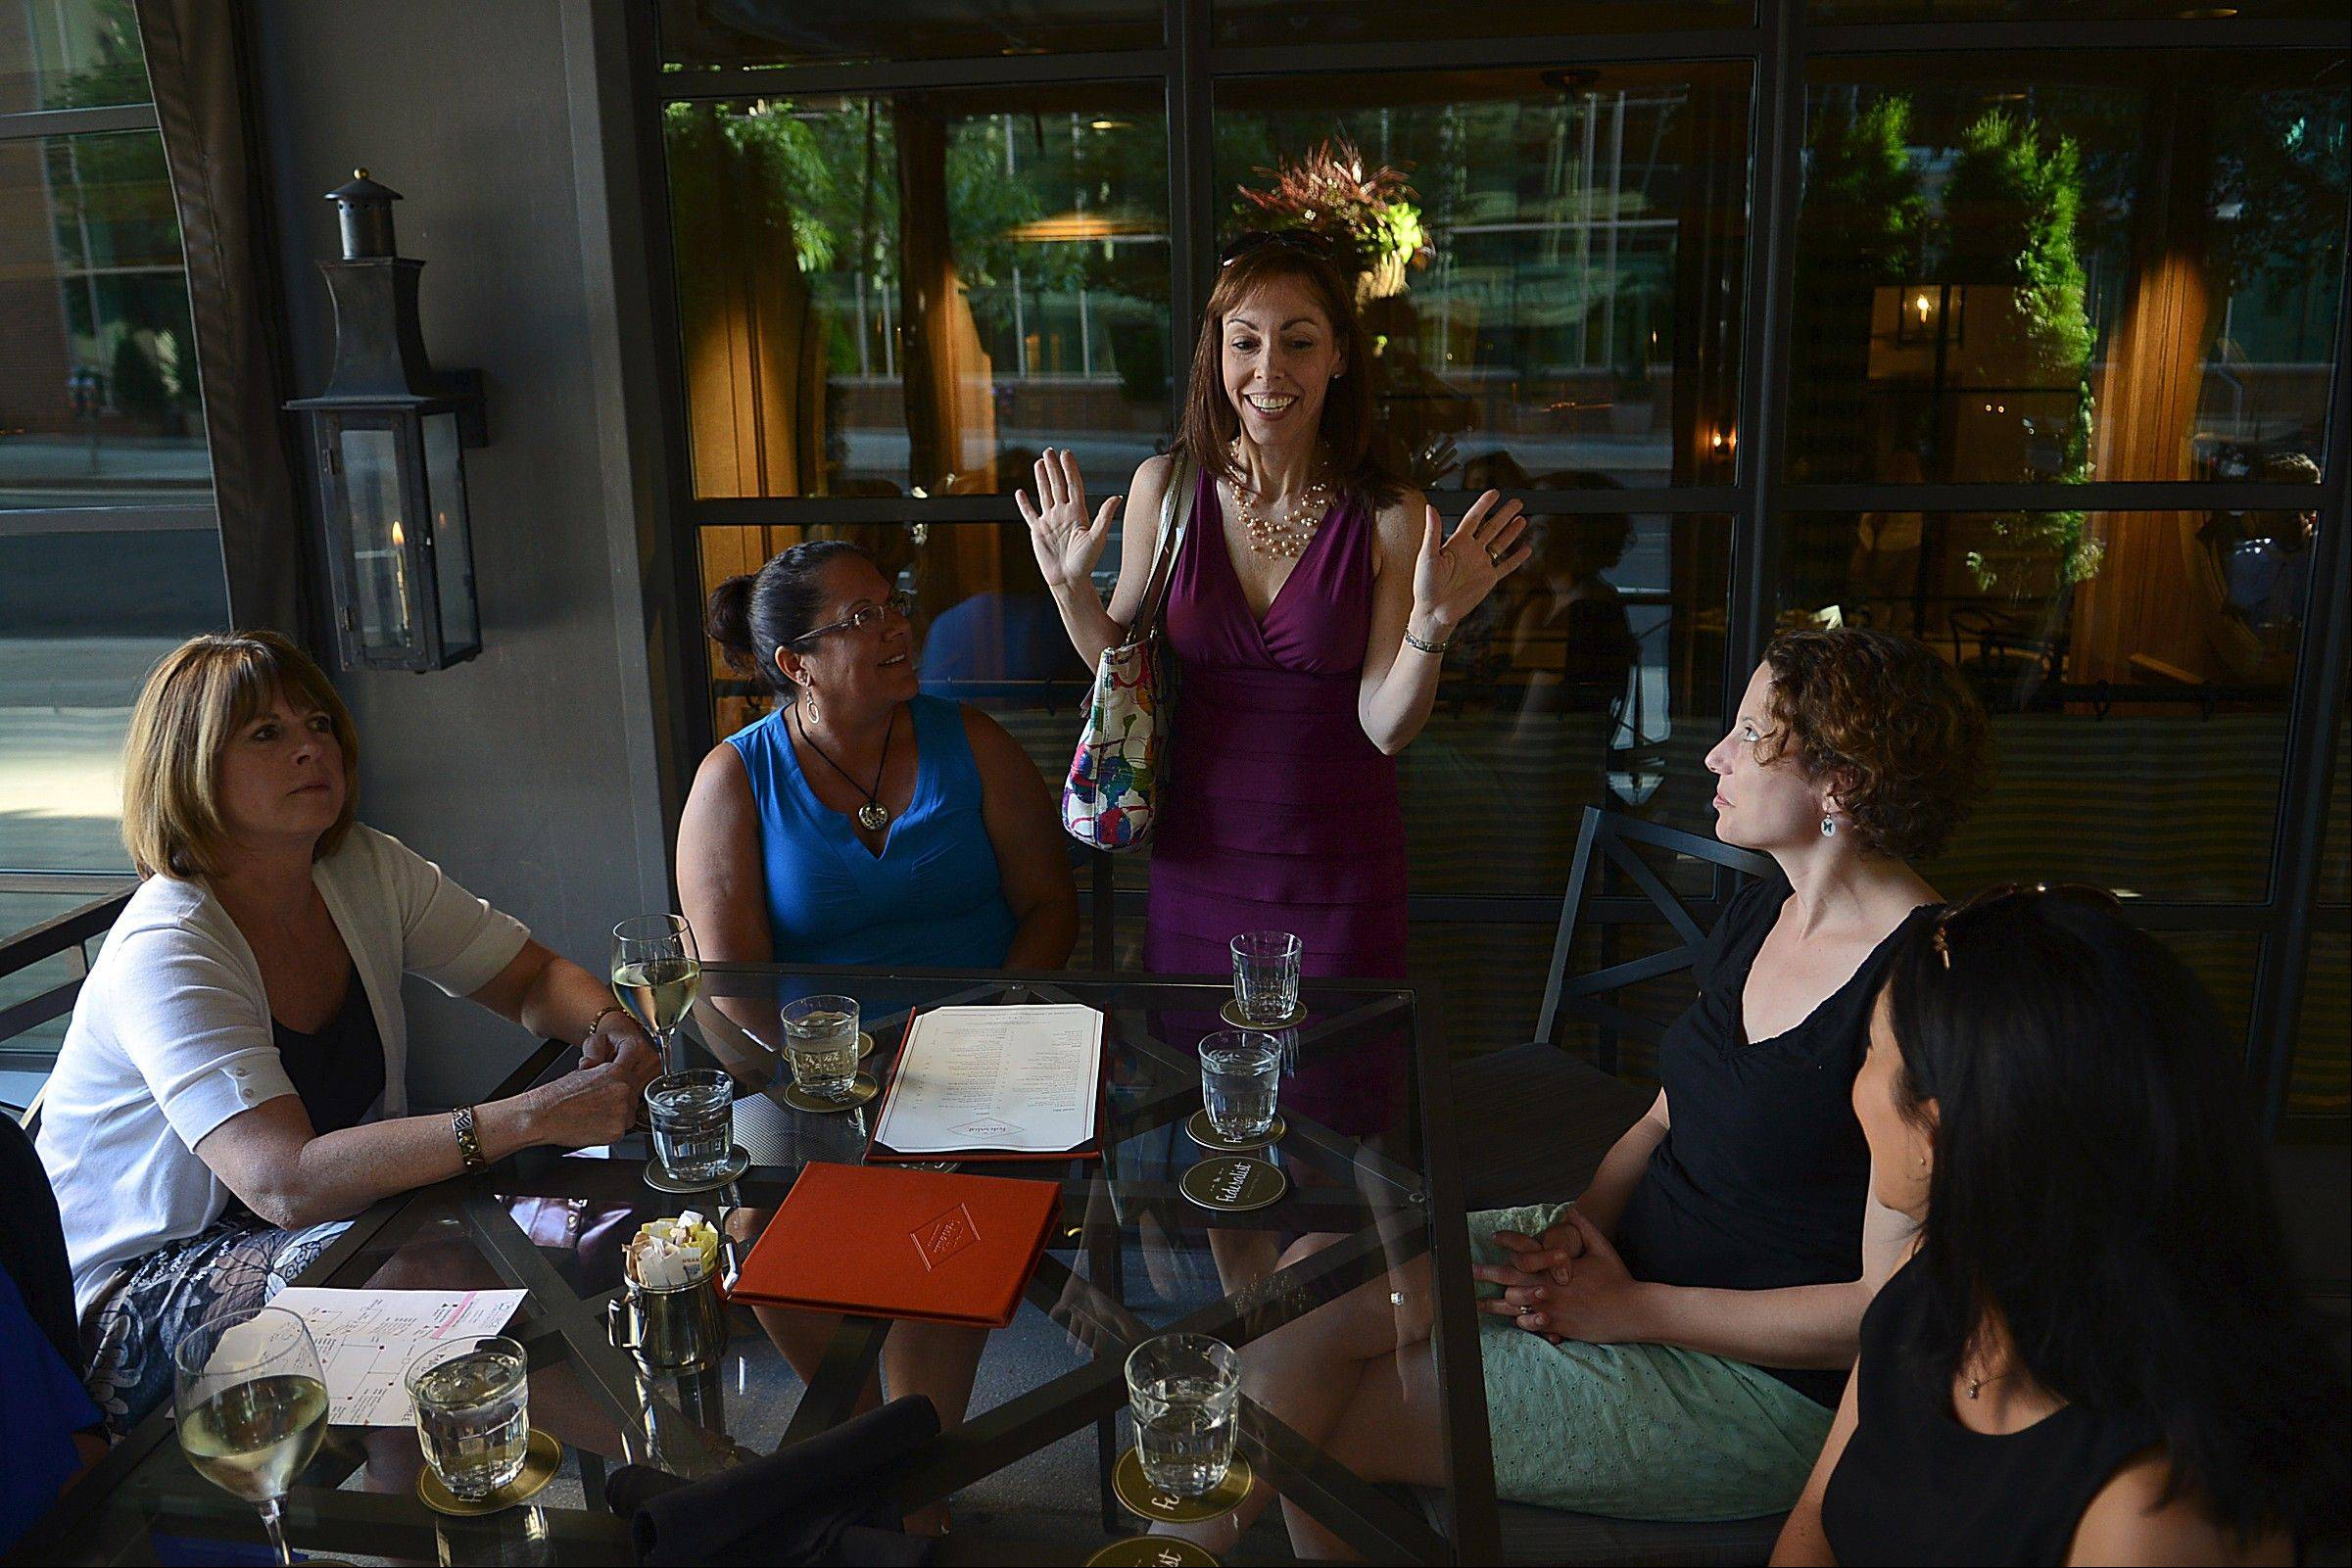 Lisa Schlager, standing, greets other women who are genetically predisposed to develop cancer. The get-together was organized so attendees could share stories of diagnoses and treatments.